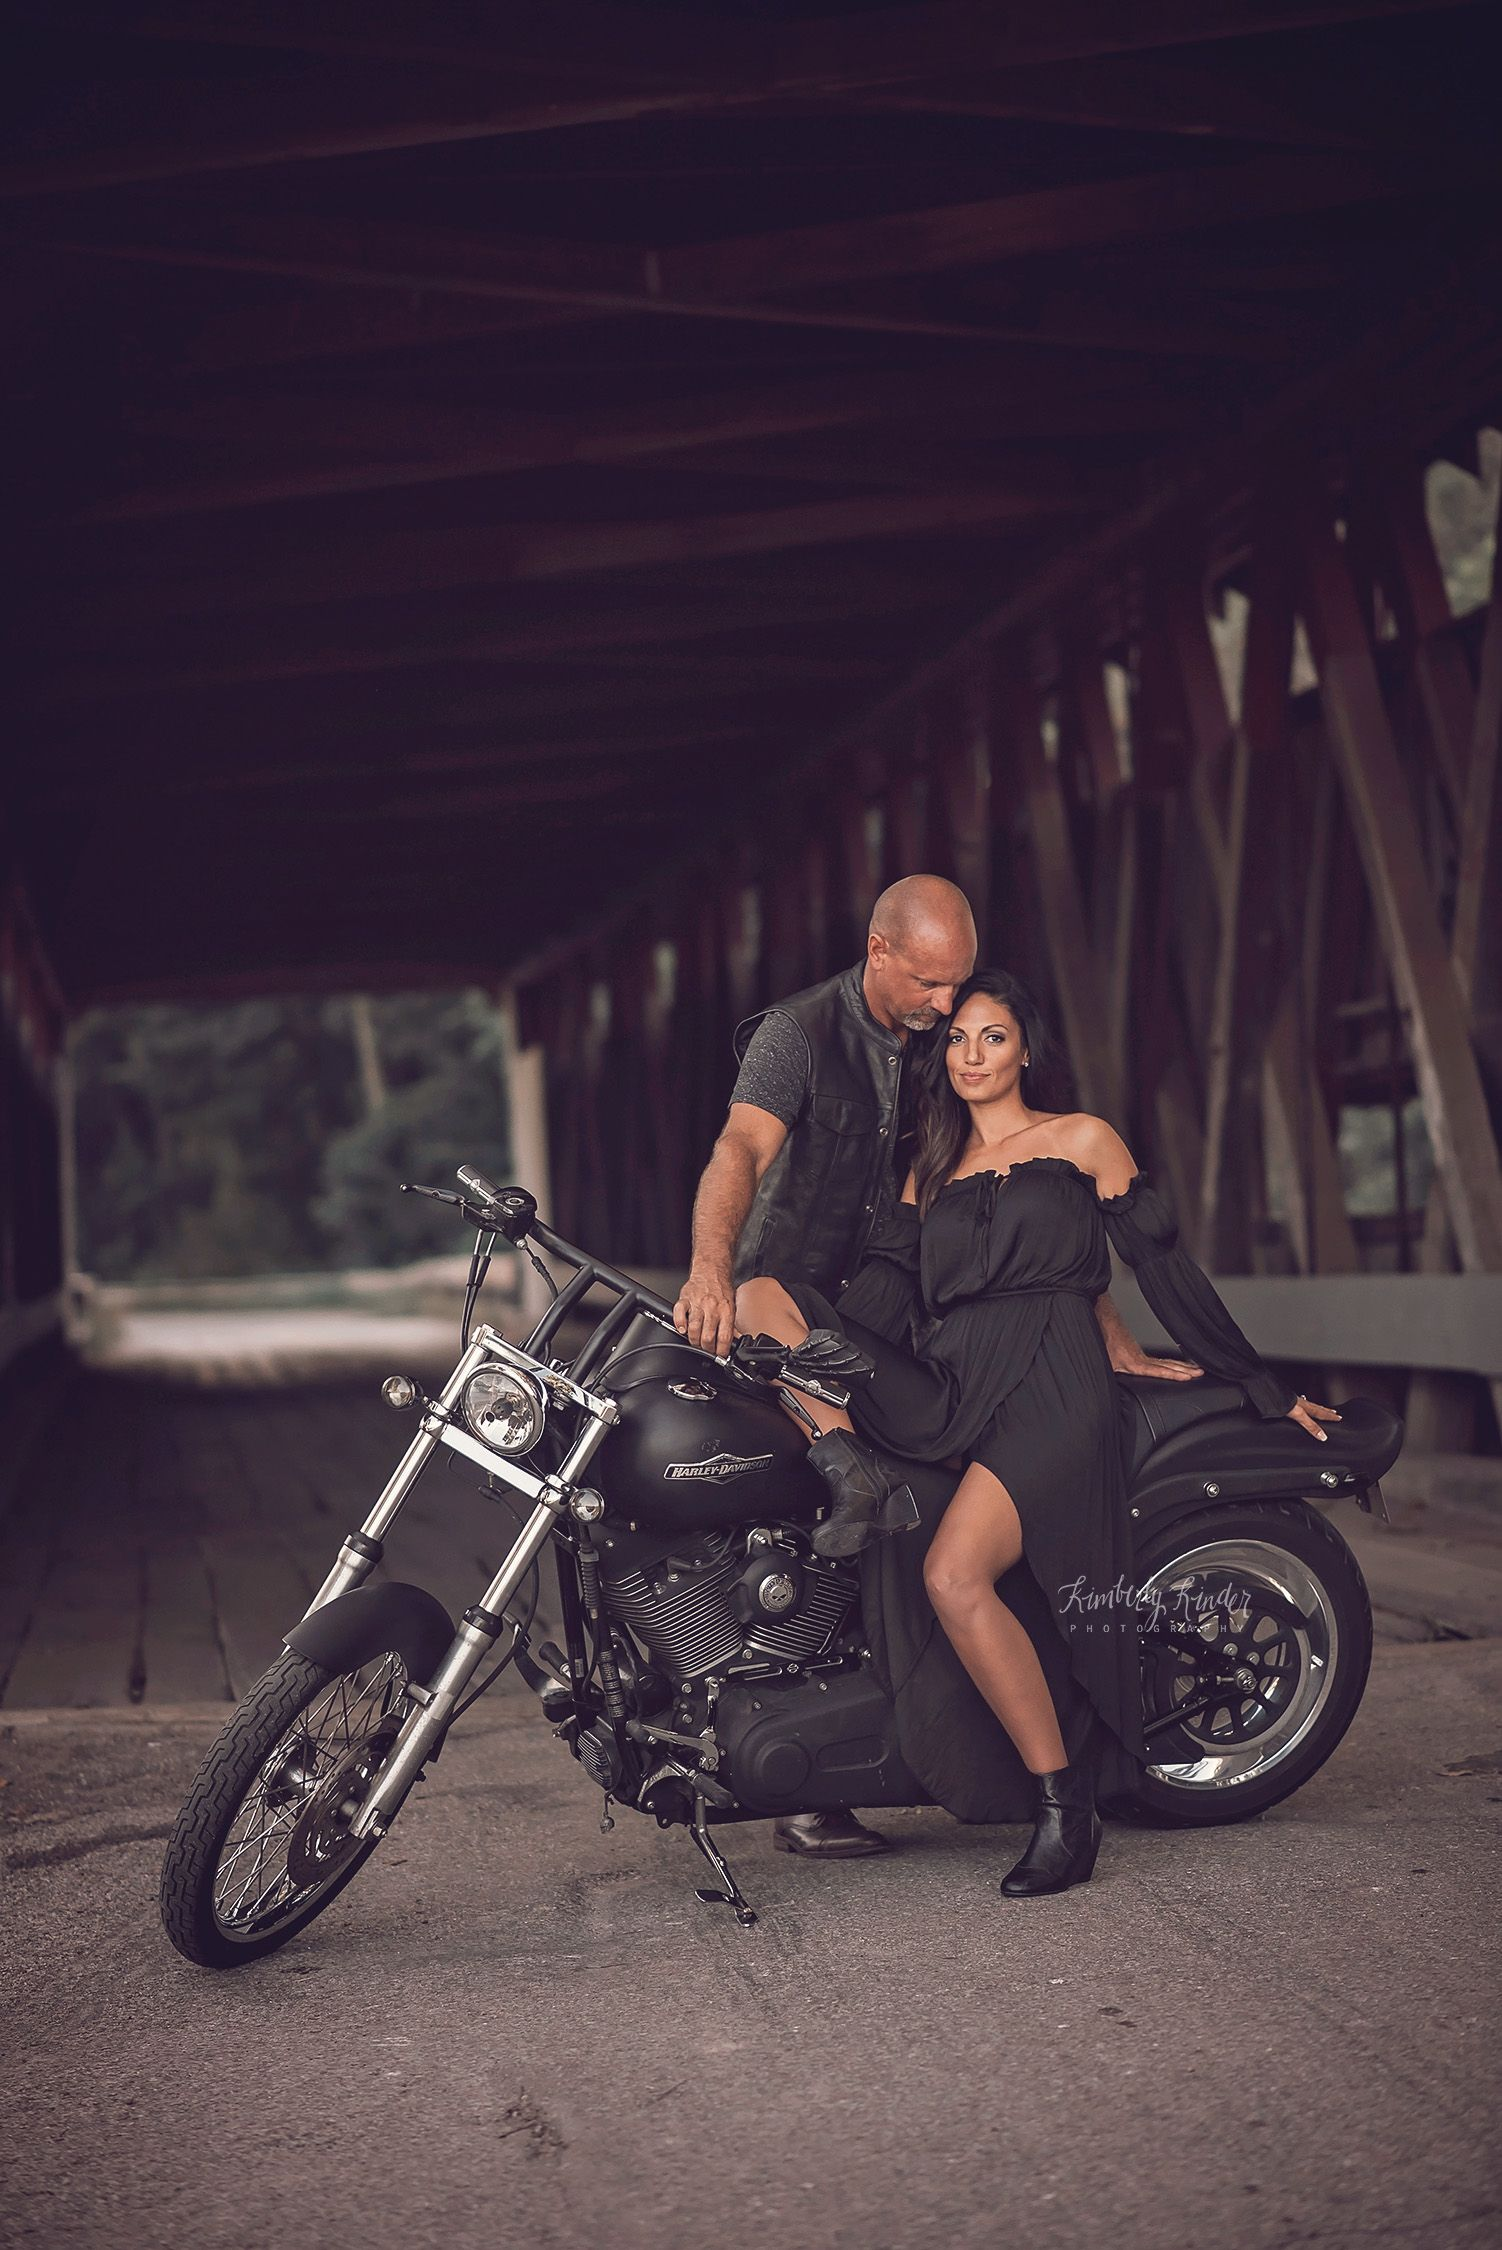 Couples Session With Harley Davidson Motorcycle Harley Couple Motorcycle Wedding Pictures Motorcycle Engagement Photos